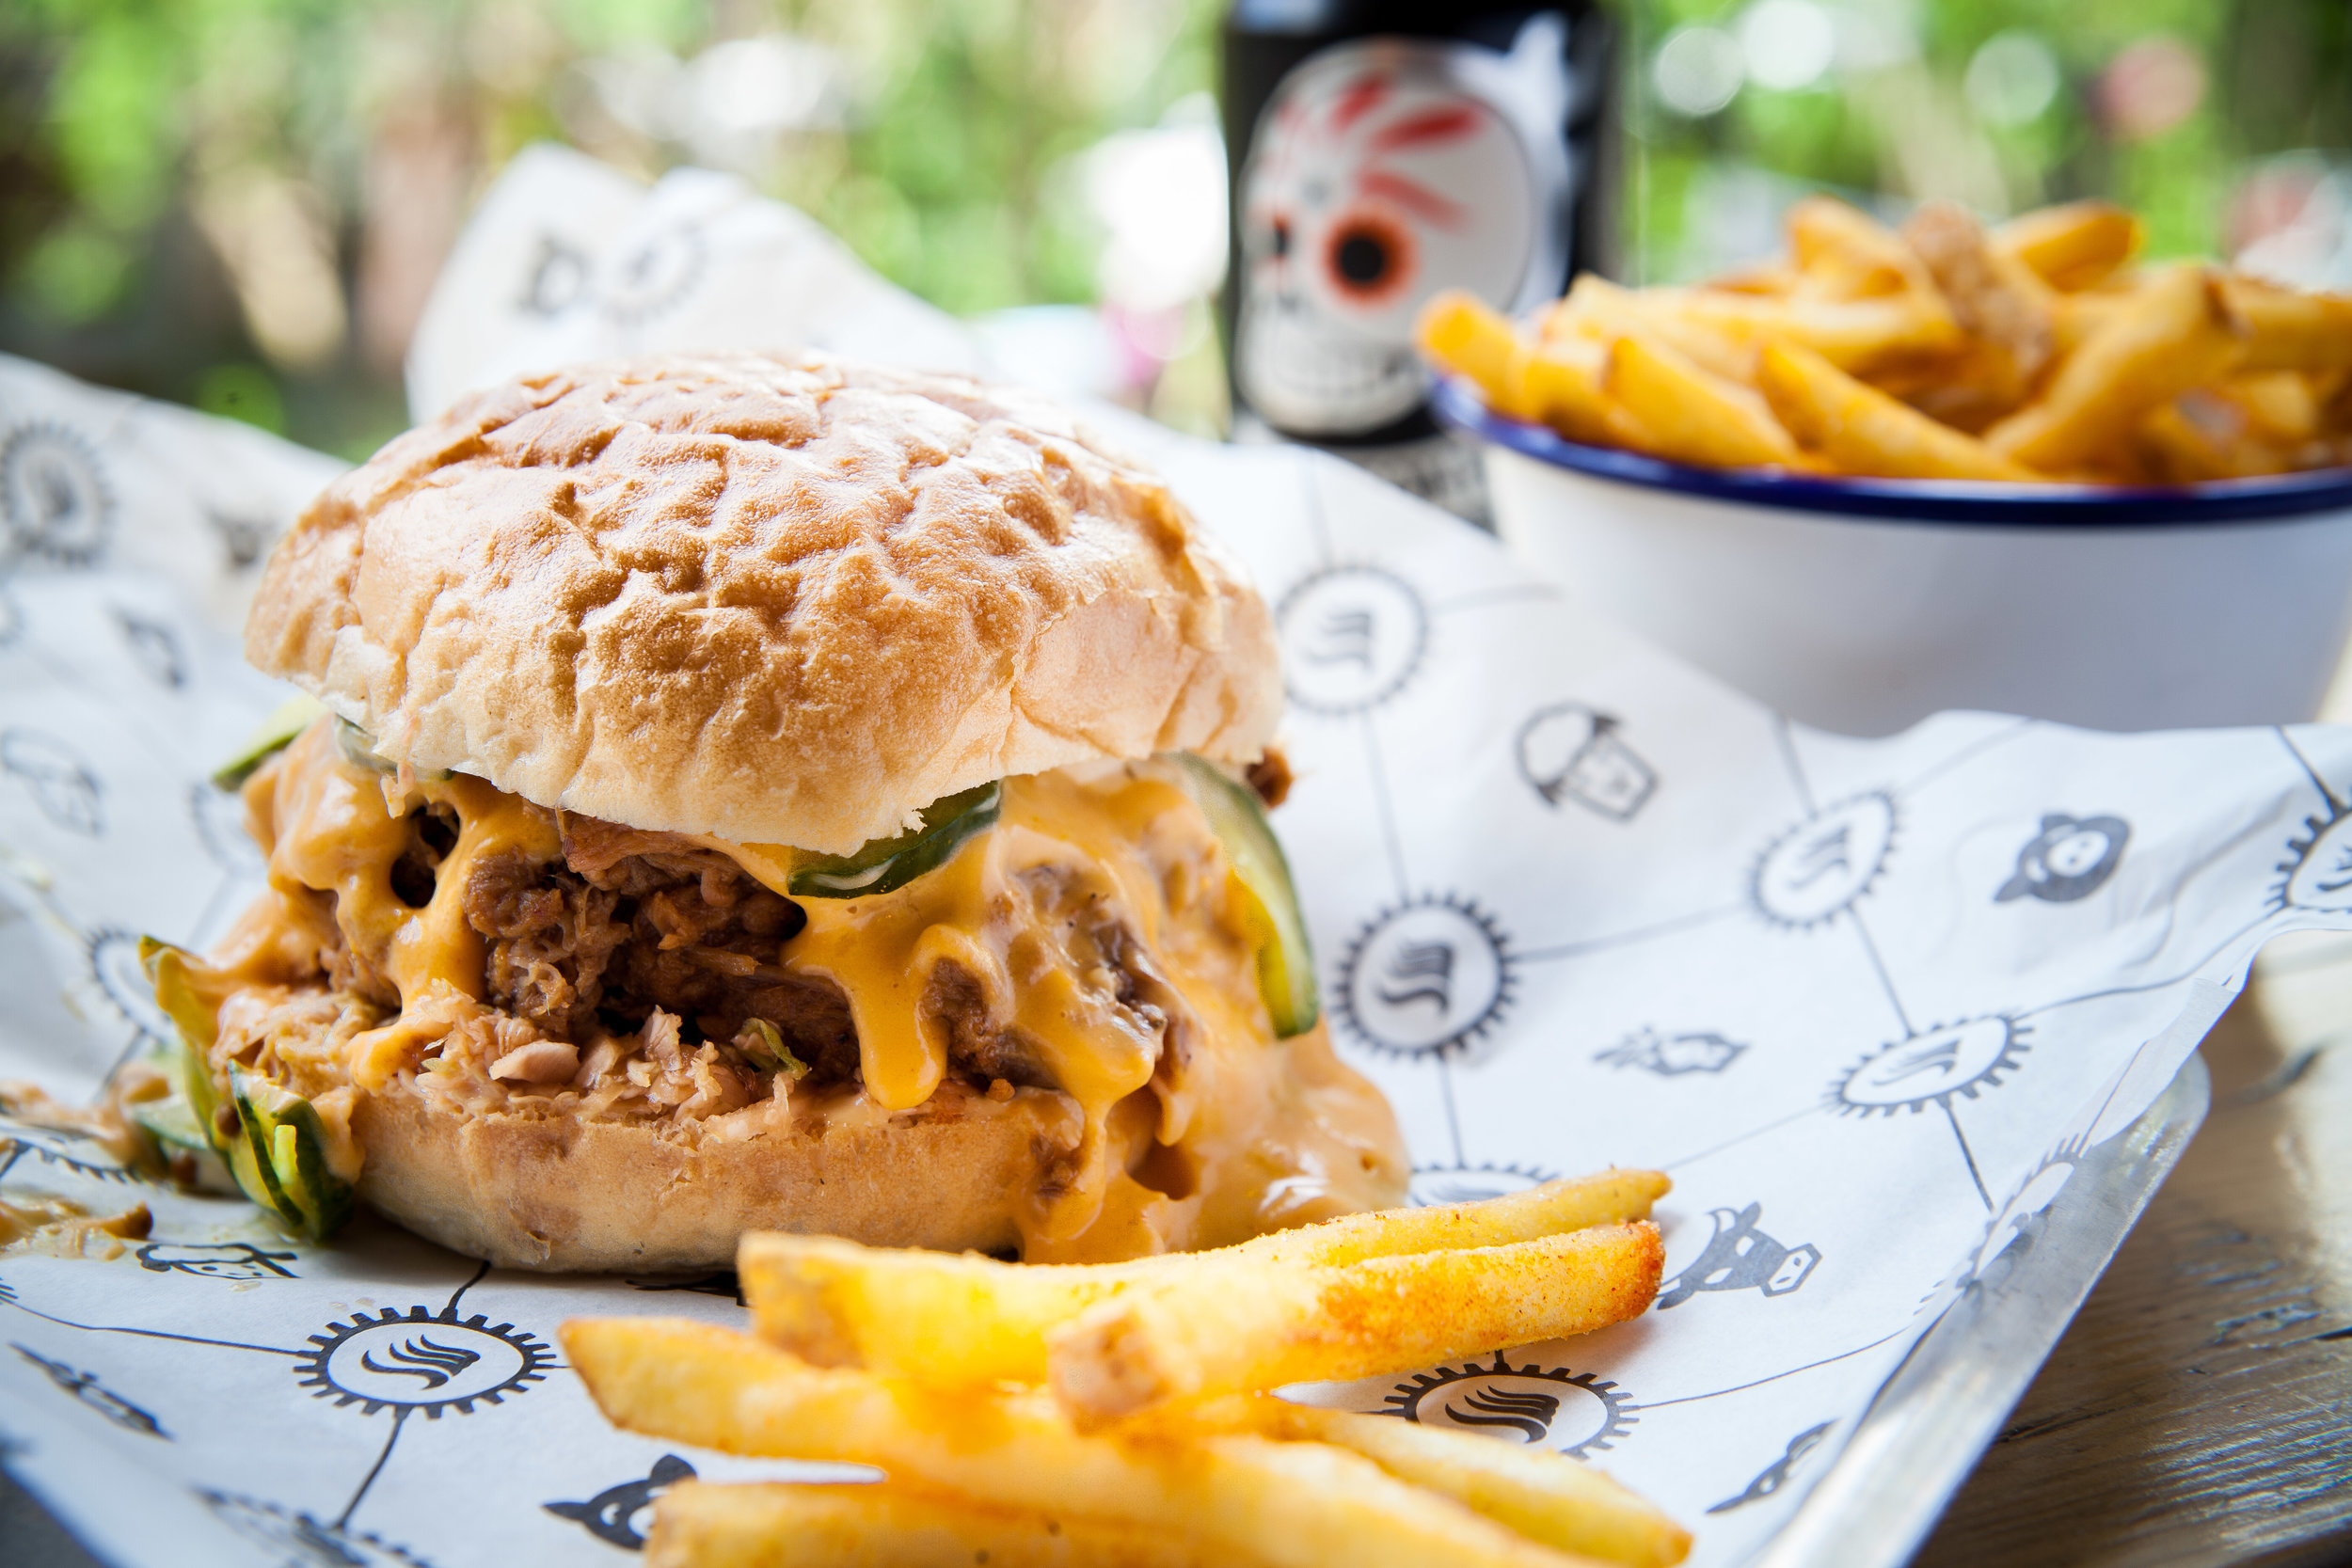 Smokeworks - £10 meal deal